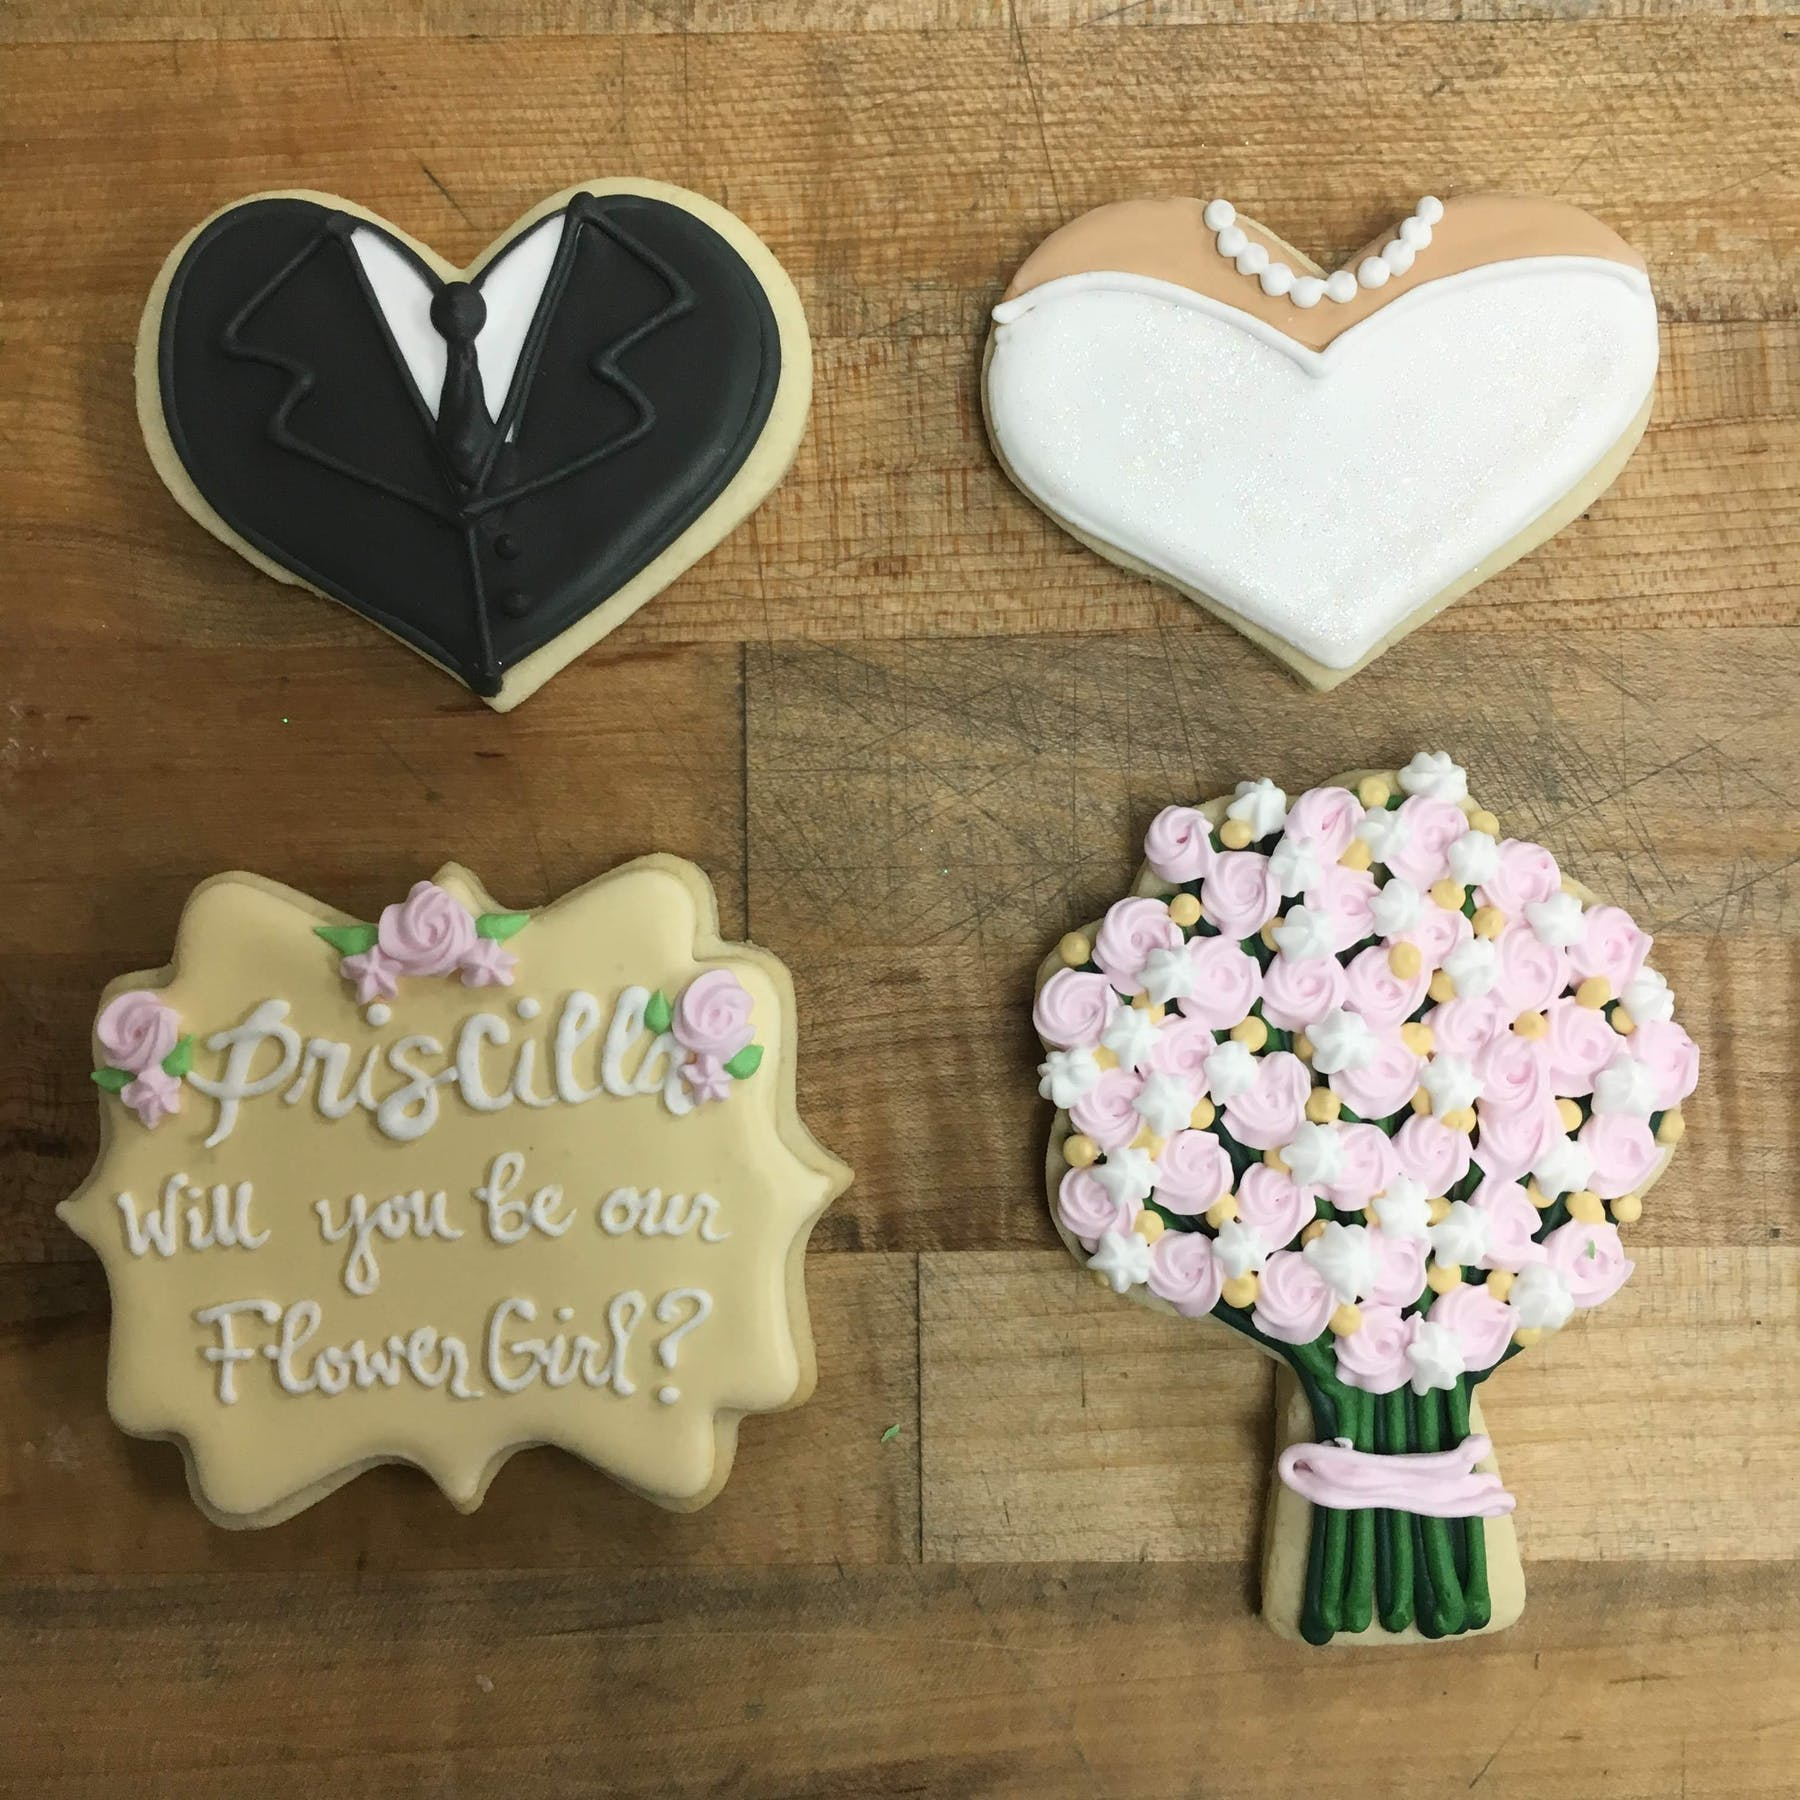 a decorated cookies bridal/wedding on a table